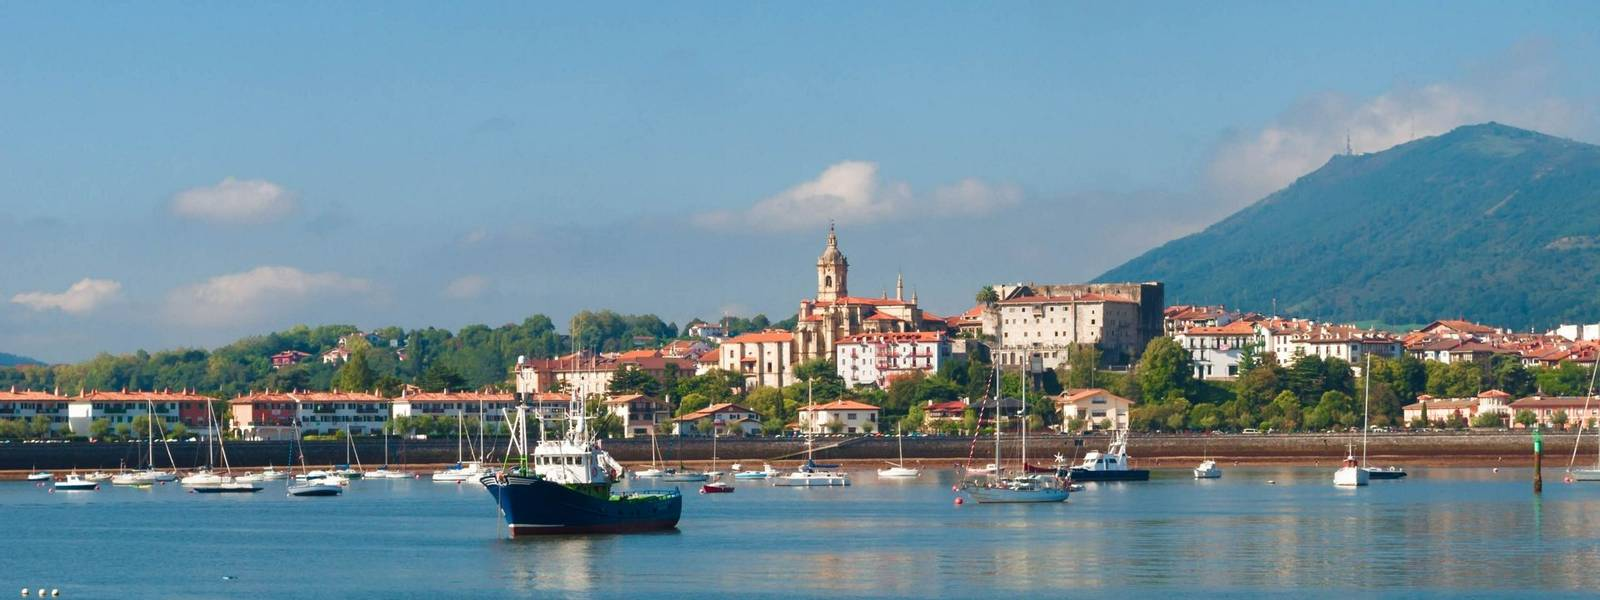 France-BasqueCountry-AdobeStock_79970194.jpeg